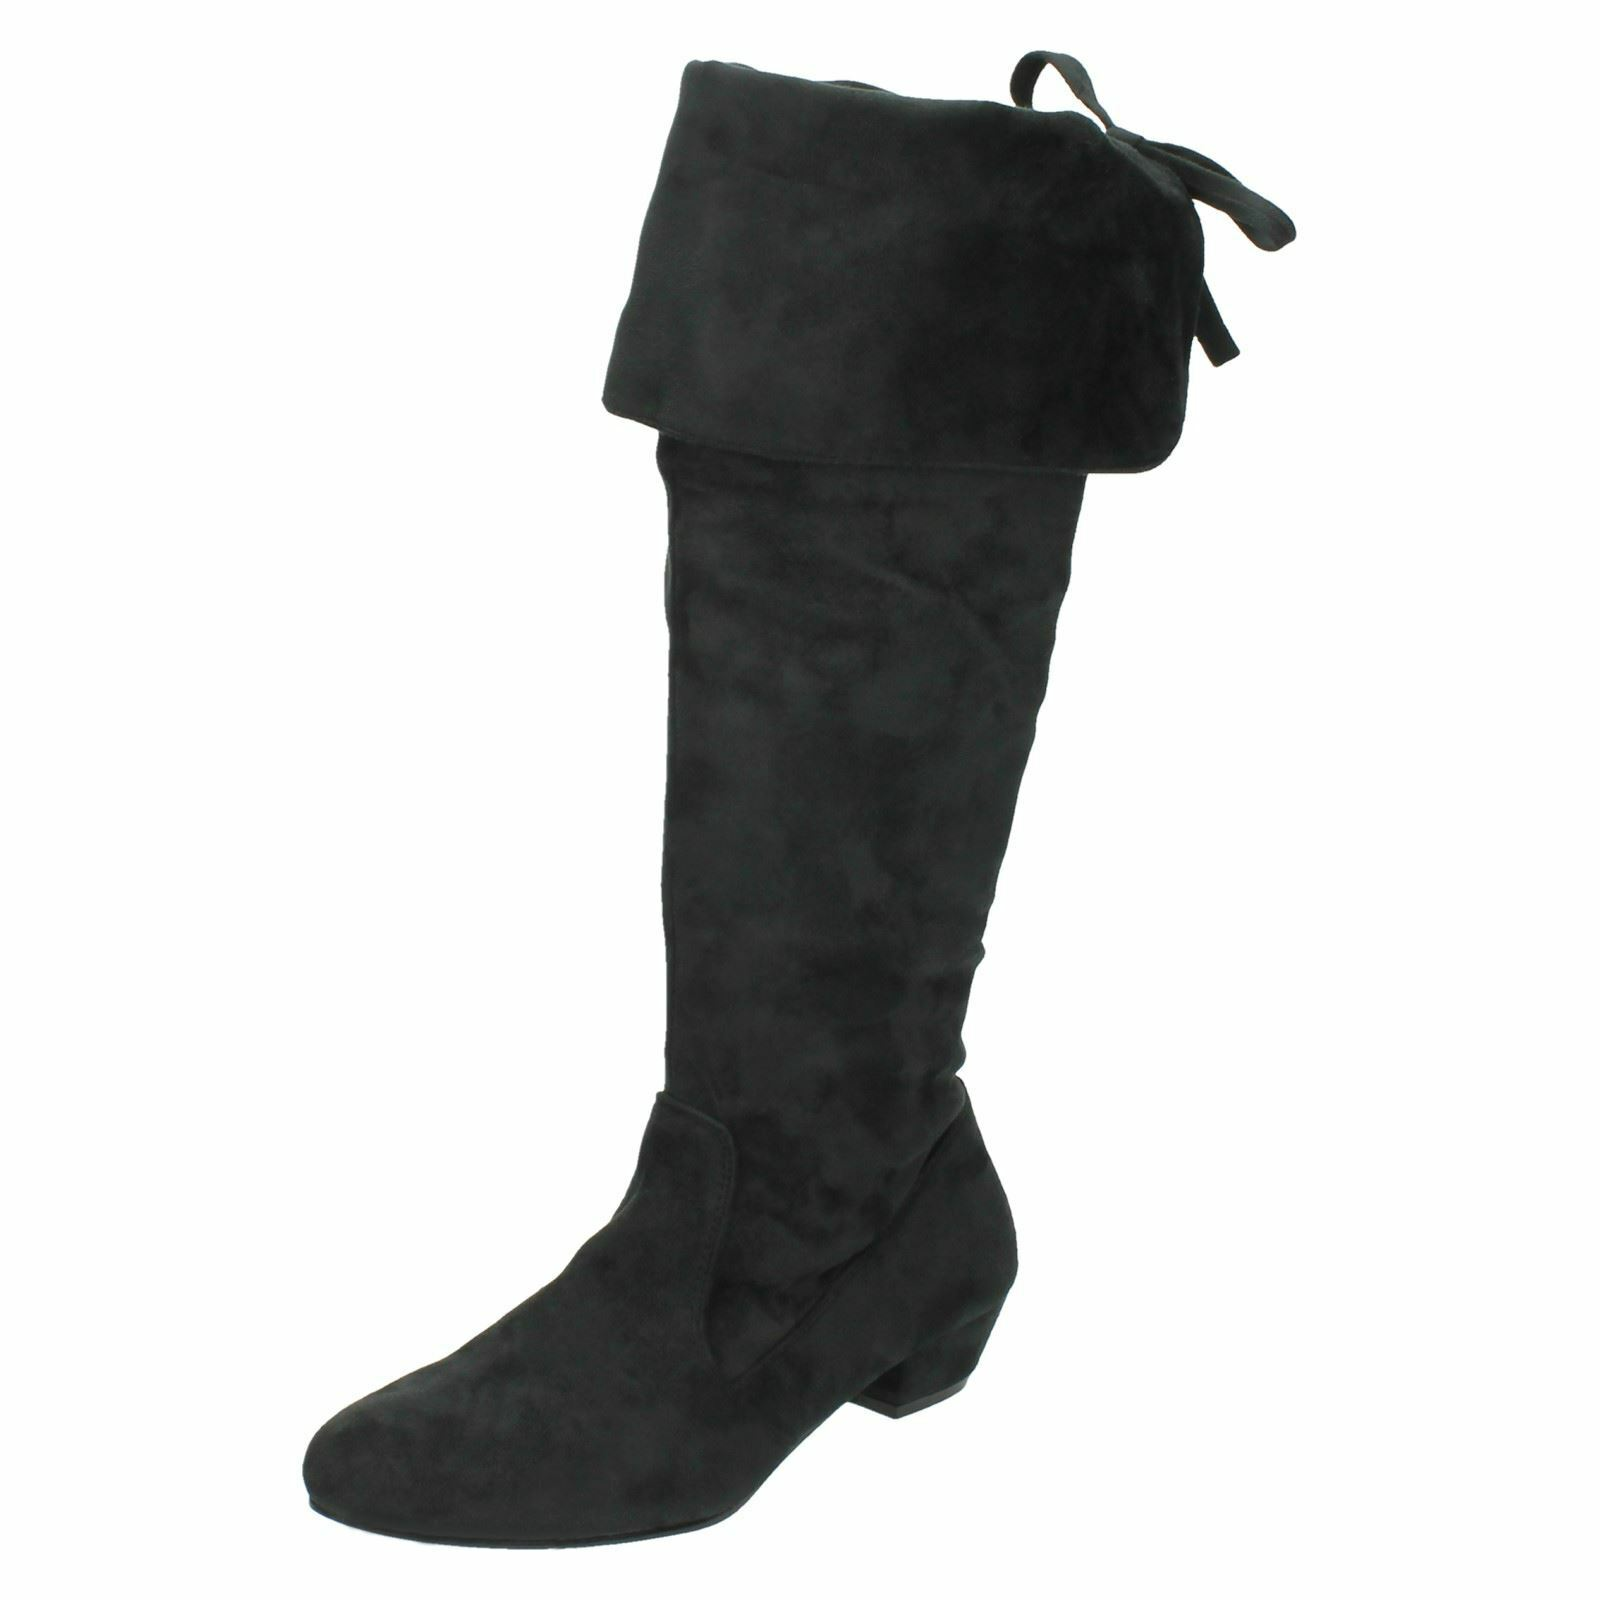 SALE WAS £29.99 NOW £9.99 Ladies Spot On black microfiber knee high boot F50203